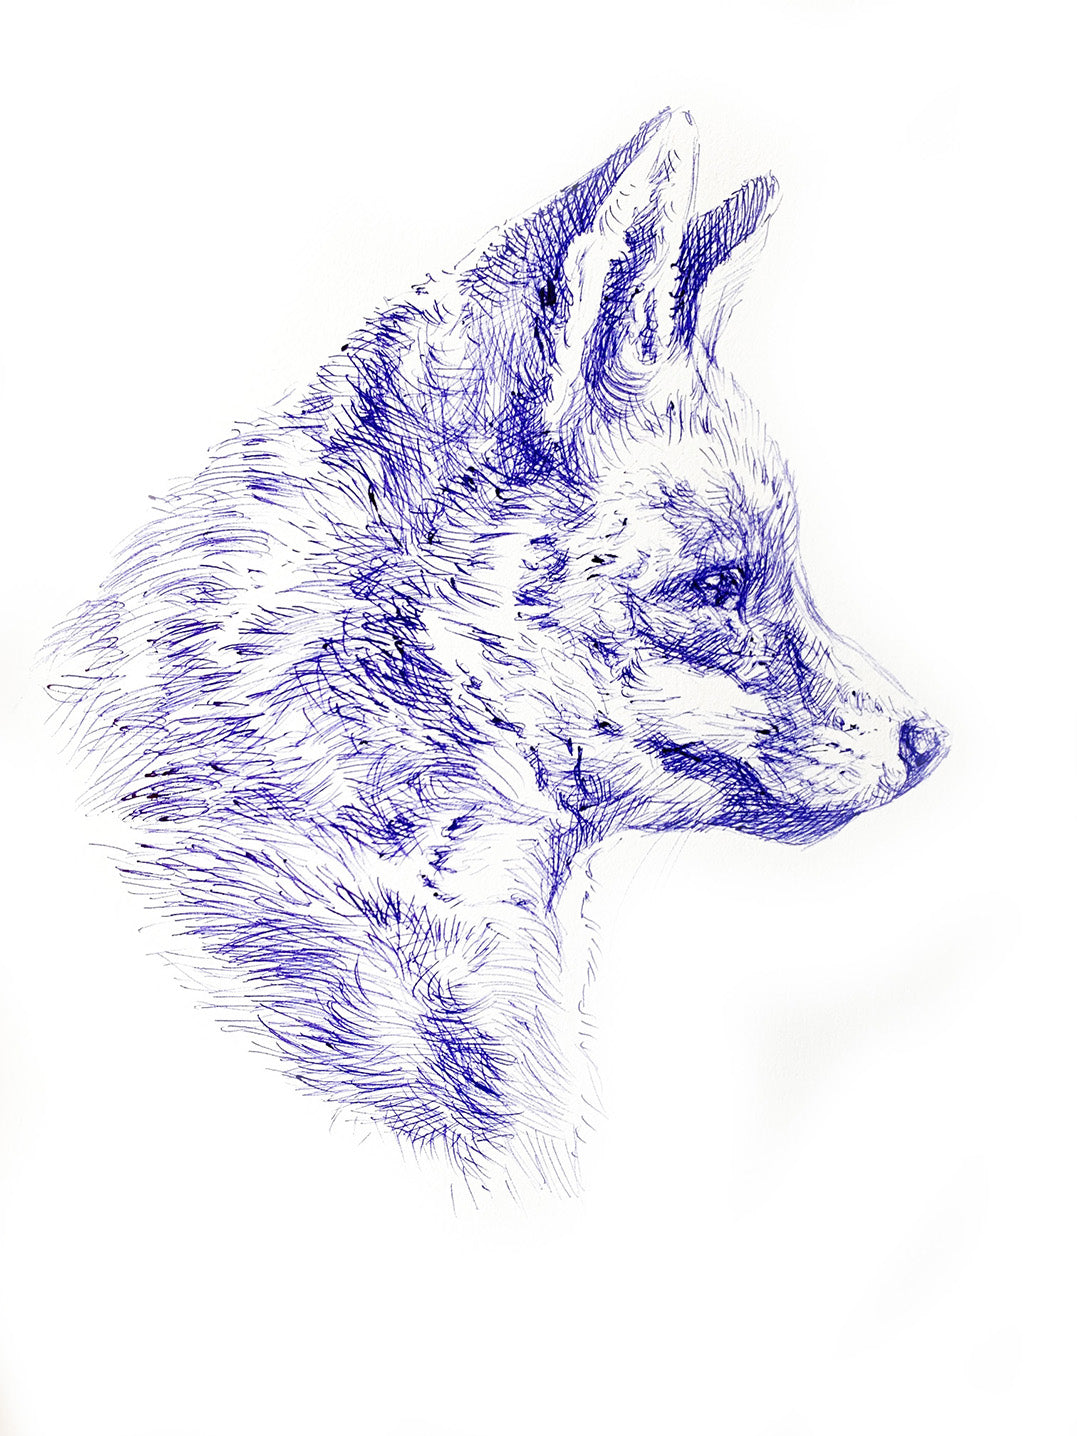 'Fox Head Study' - Original Ink Drawing by David Cemmick - 35 x 25cm